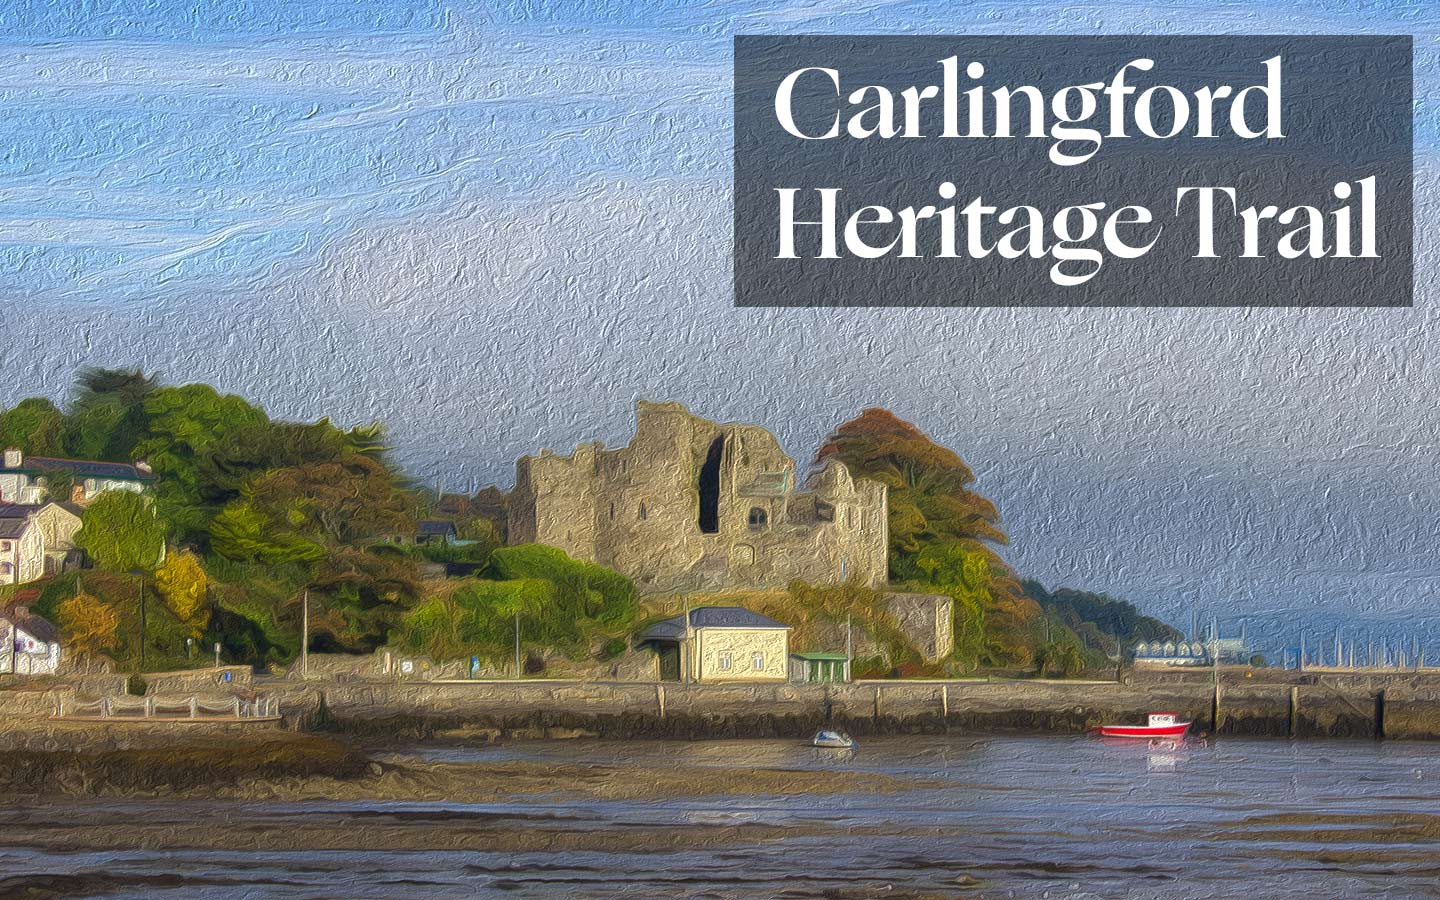 Take a Self Guided Tour with the Carlingford Heritage Trail Audio Guide